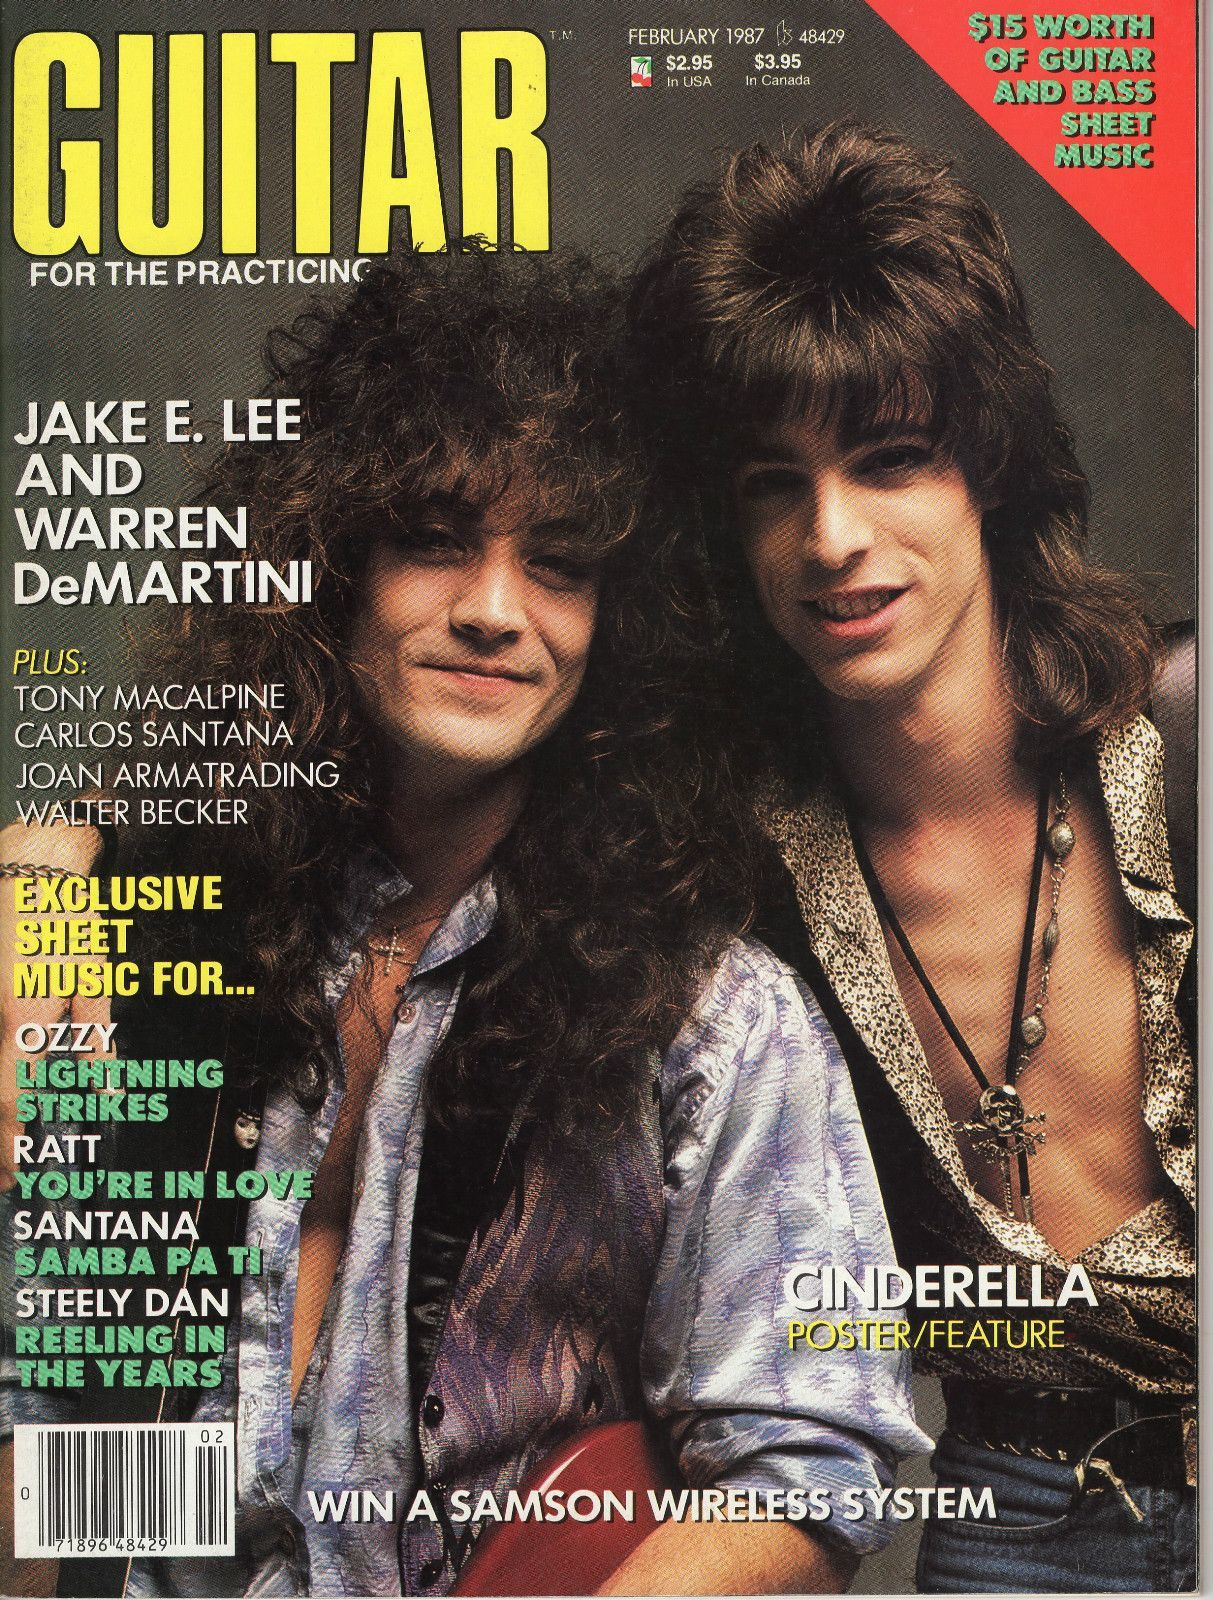 Warren DeMartini - February 1987 - Warren Demartini, Jake Lee - Guitar For The Practising Magazine Cover (United States)